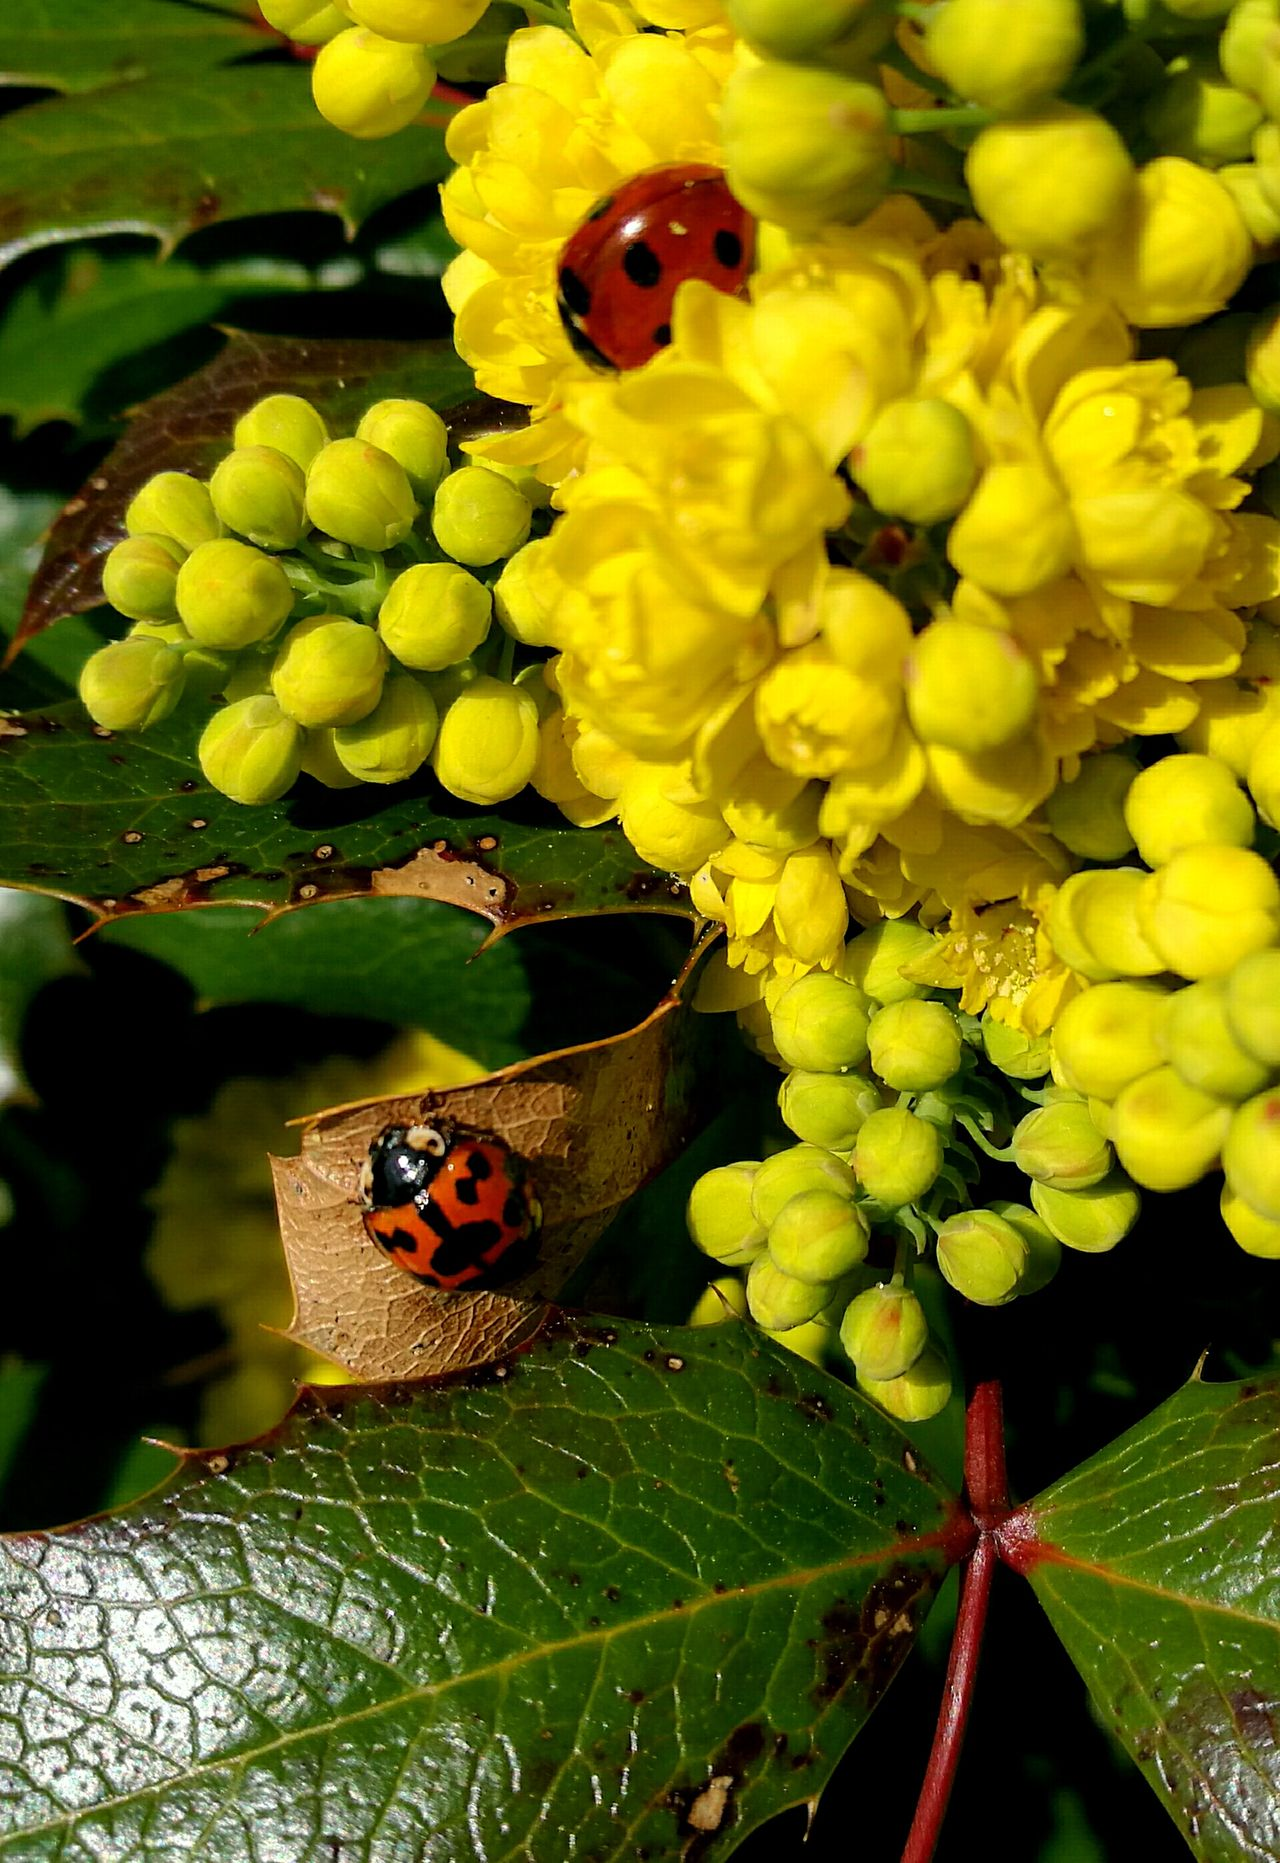 Insect Animal Themes Leaf Animals In The Wild Yellow Nature Ladybug Growth Plant Flower Flower Head Beauty In Nature Animal Wildlife Ladybug🐞 Ladybeetle Ladybugs Bugs Insects  Nature HuaweiP9Photography Huawei P9 Leica Huaweiphotography HuaweiP9 Insect Photography